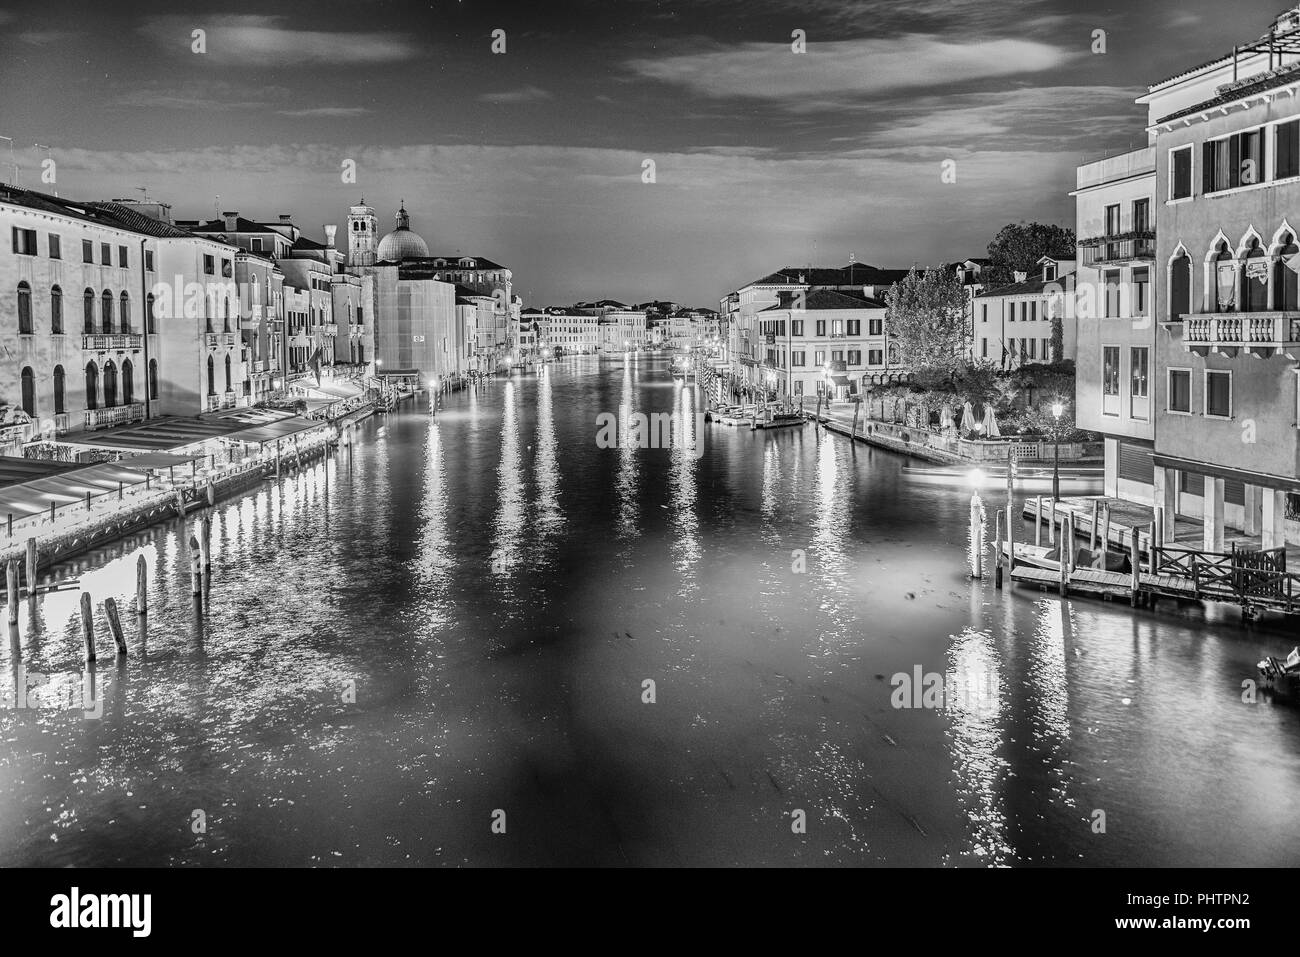 Scenic view at night with beautiful reflections of the Grand Canal in Venice, Italy - Stock Image